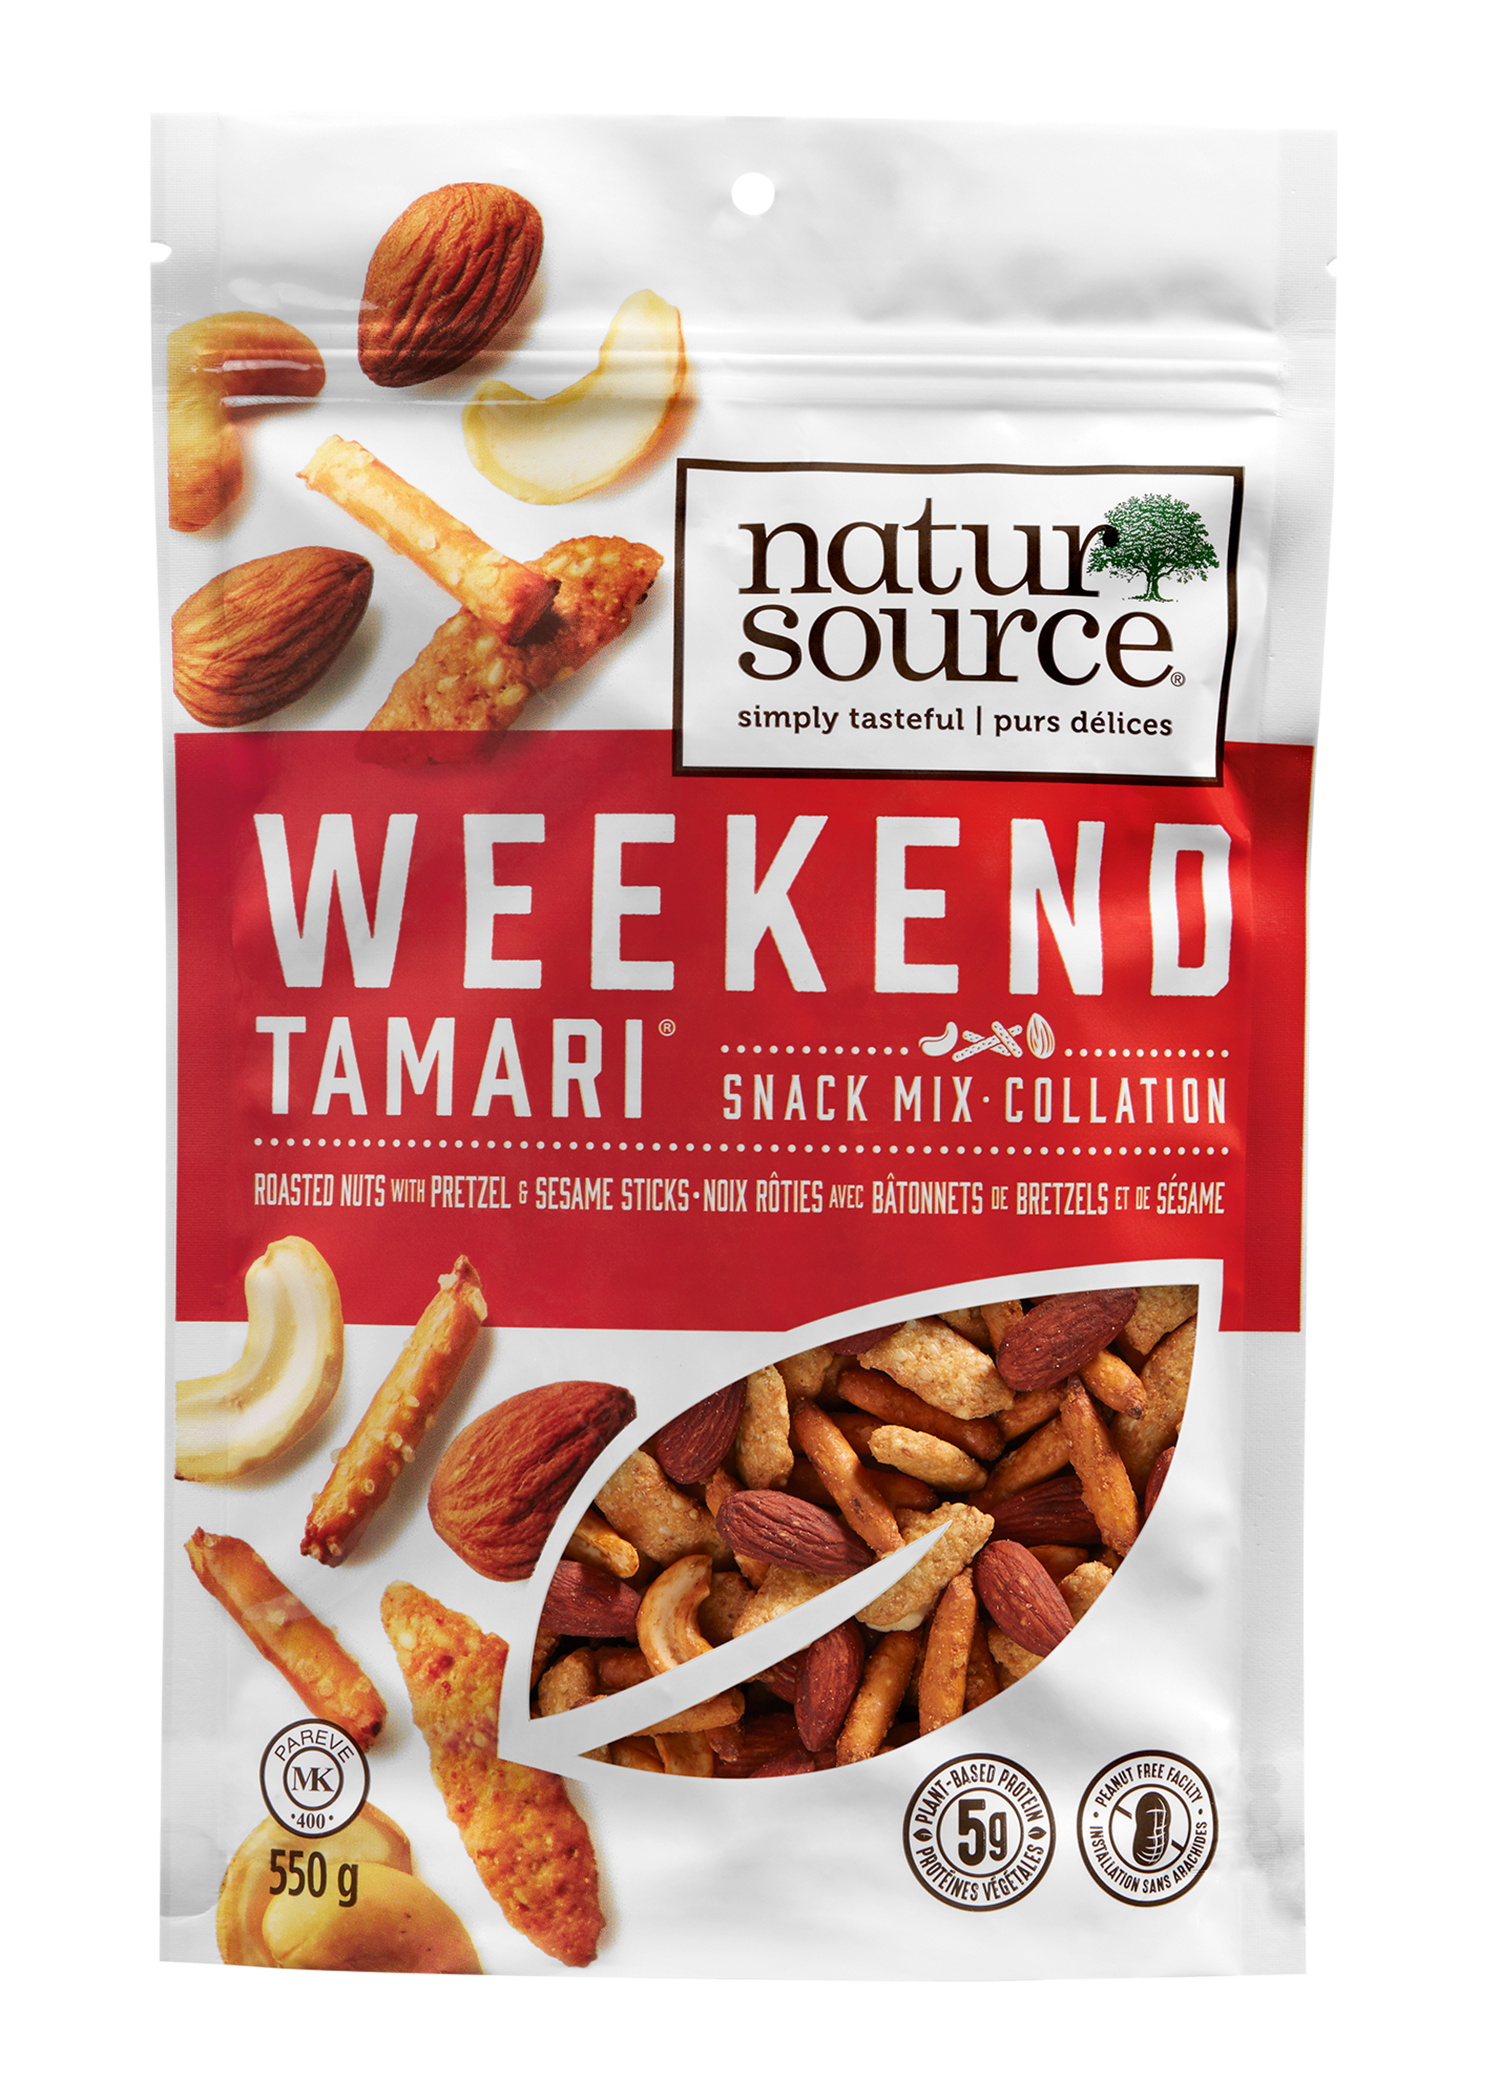 natursource Weekend Tamari® snack mix with roasted nuts, pretzel and sesame sticks